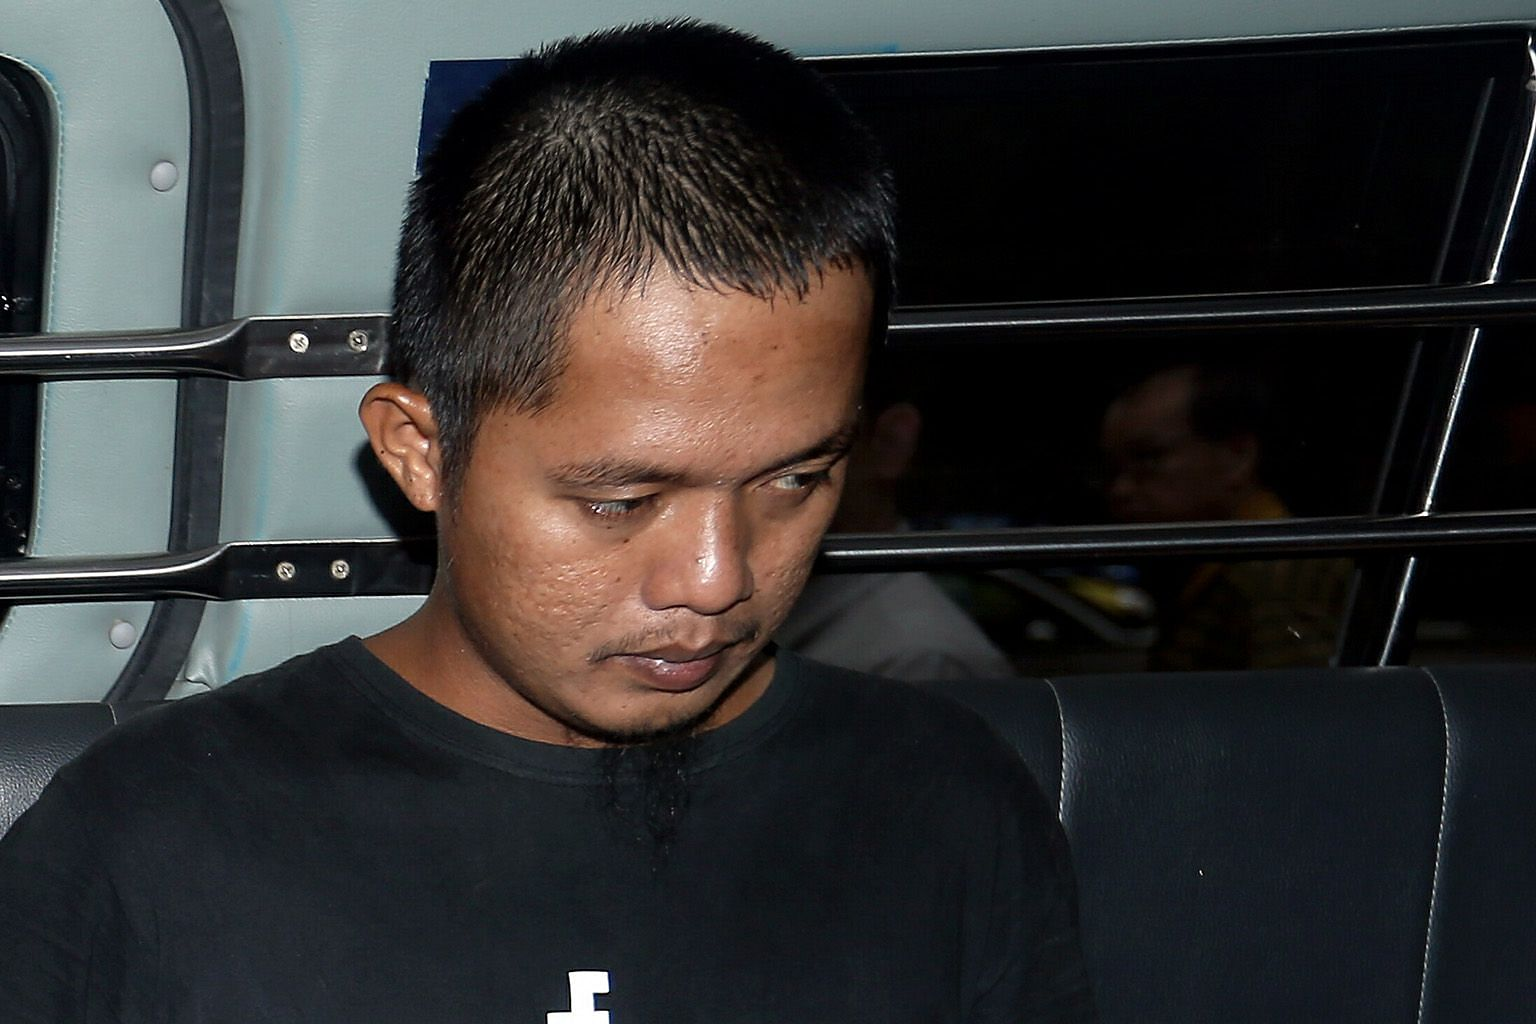 Sarawakian Donny Meluda has been in custody since he was brought back to Singapore on Jan 18 last year. His sentencing brings to a close court proceedings against the gang who went on a violent robbery spree in 2010, killing one victim and seriously